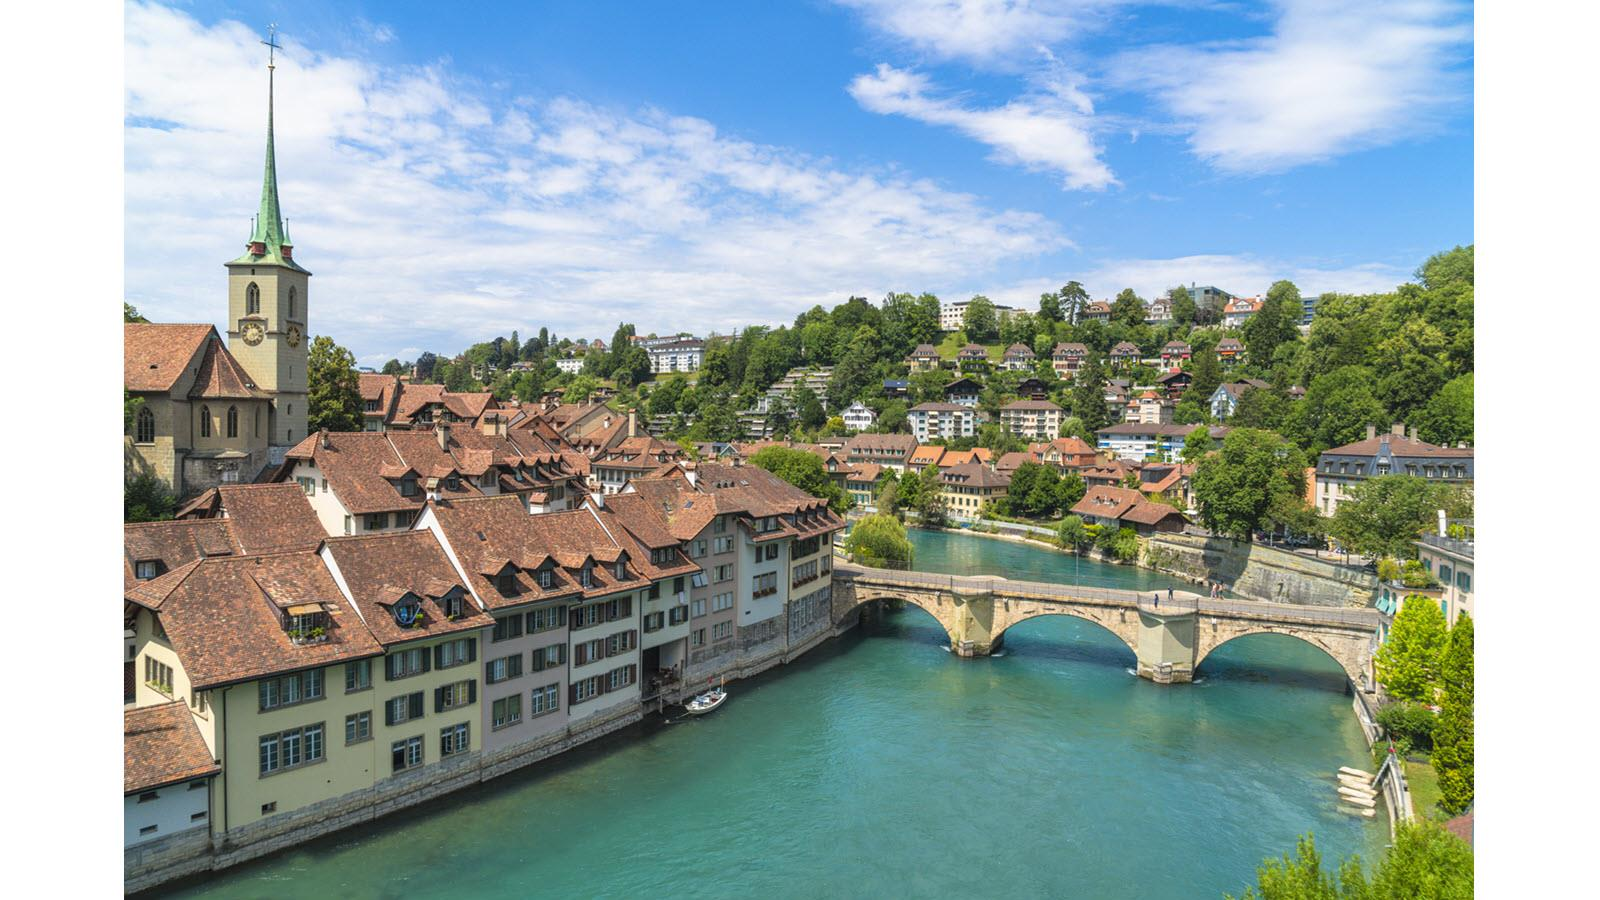 aerial view of Bern, Switzerland and bridge over the Aare River